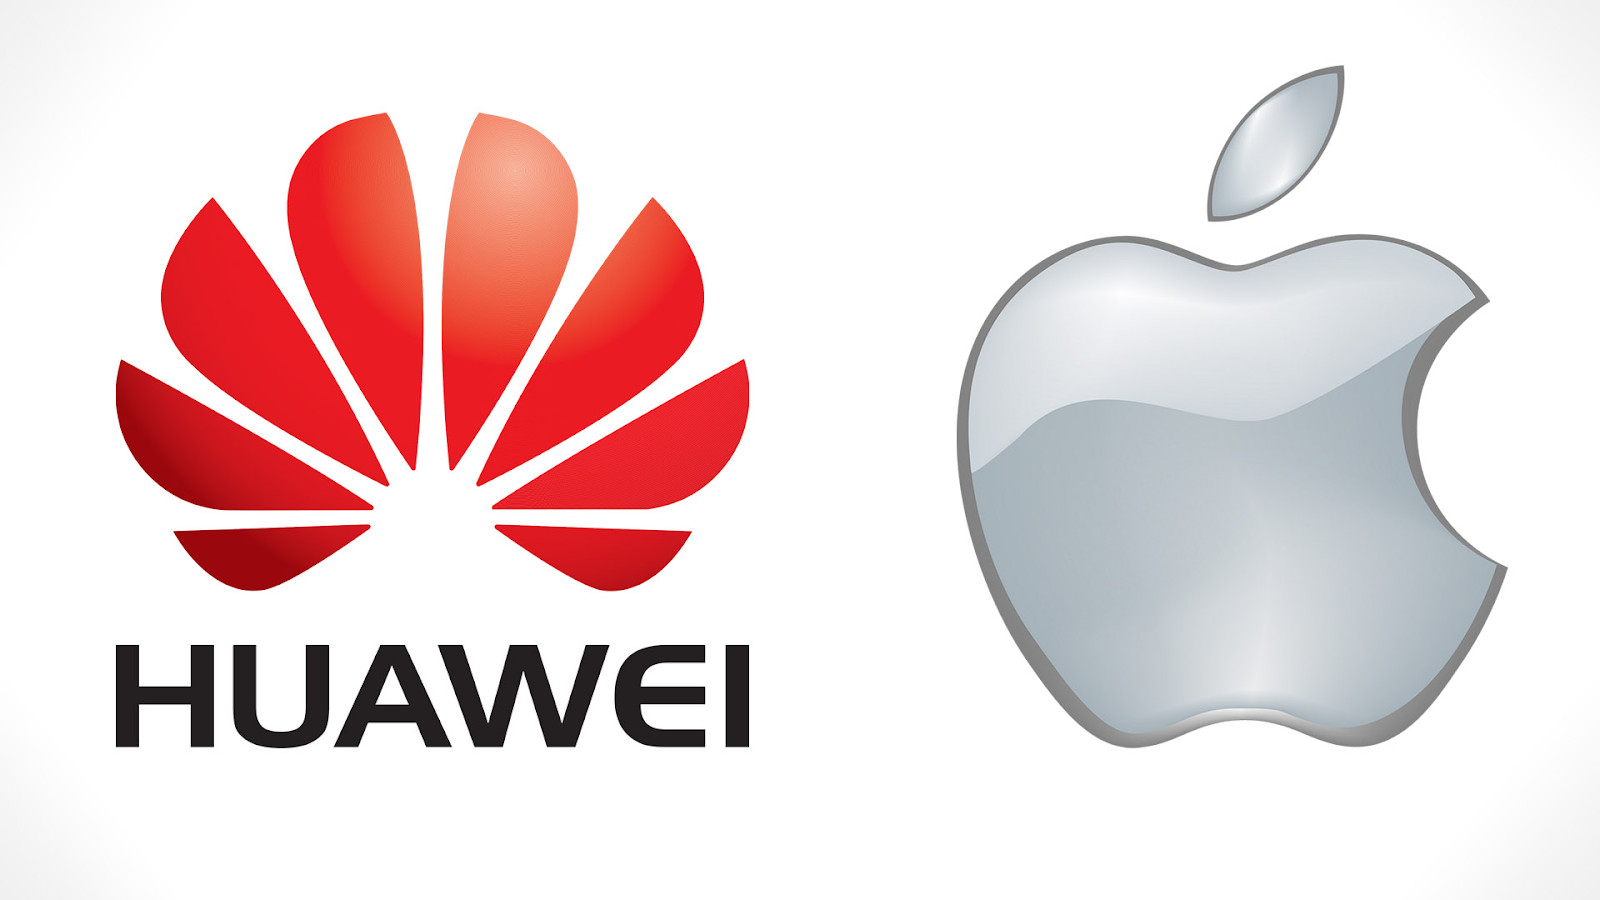 Apple has an advantage if the Huawei ban continues after